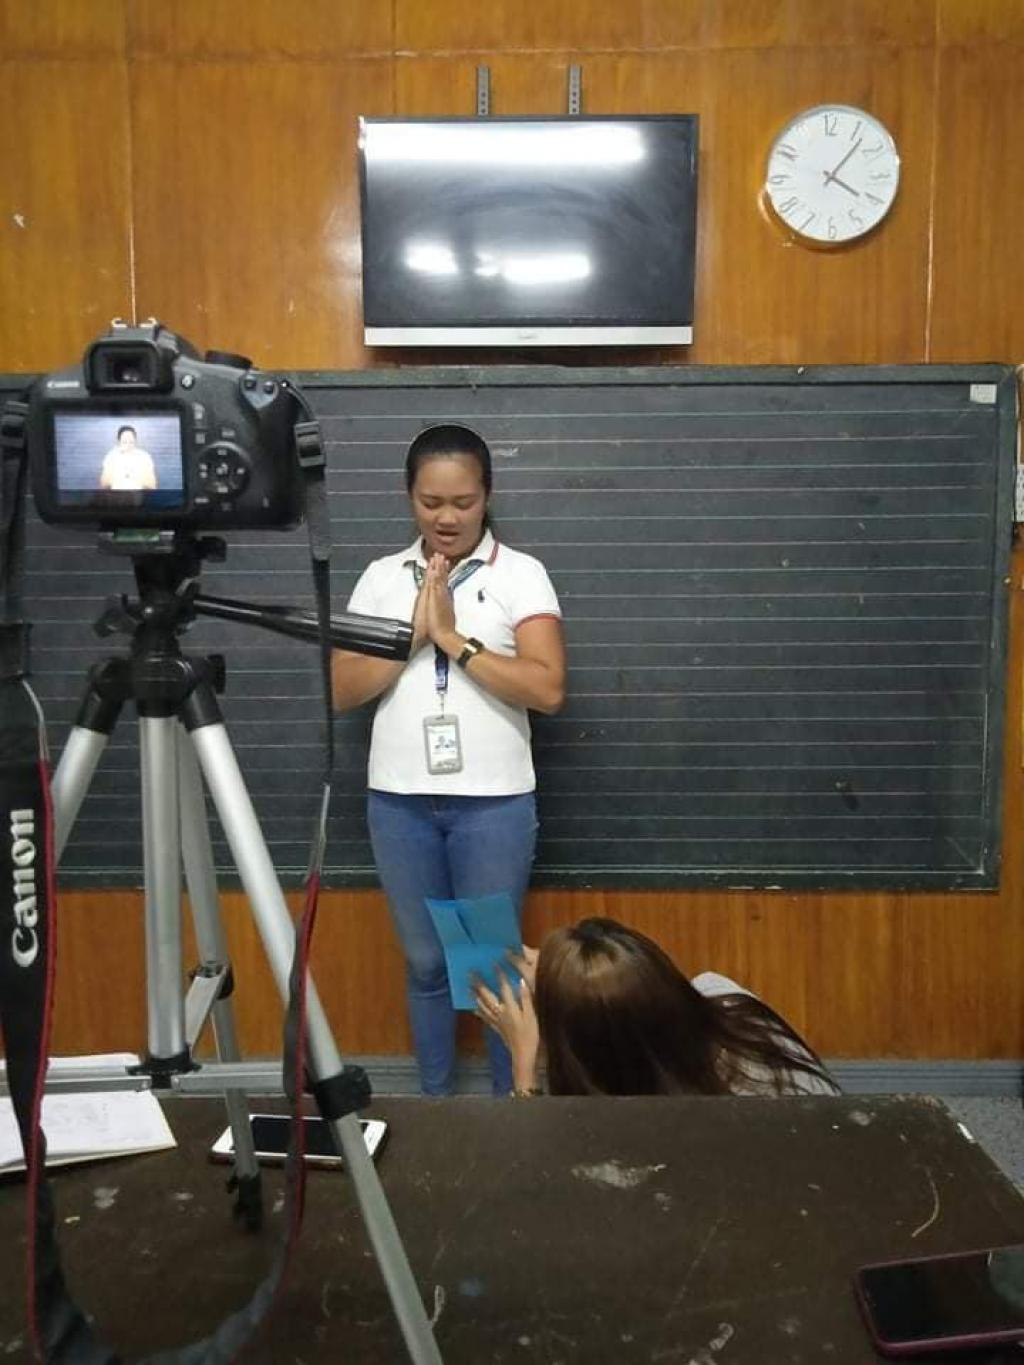 Recording of video for online class